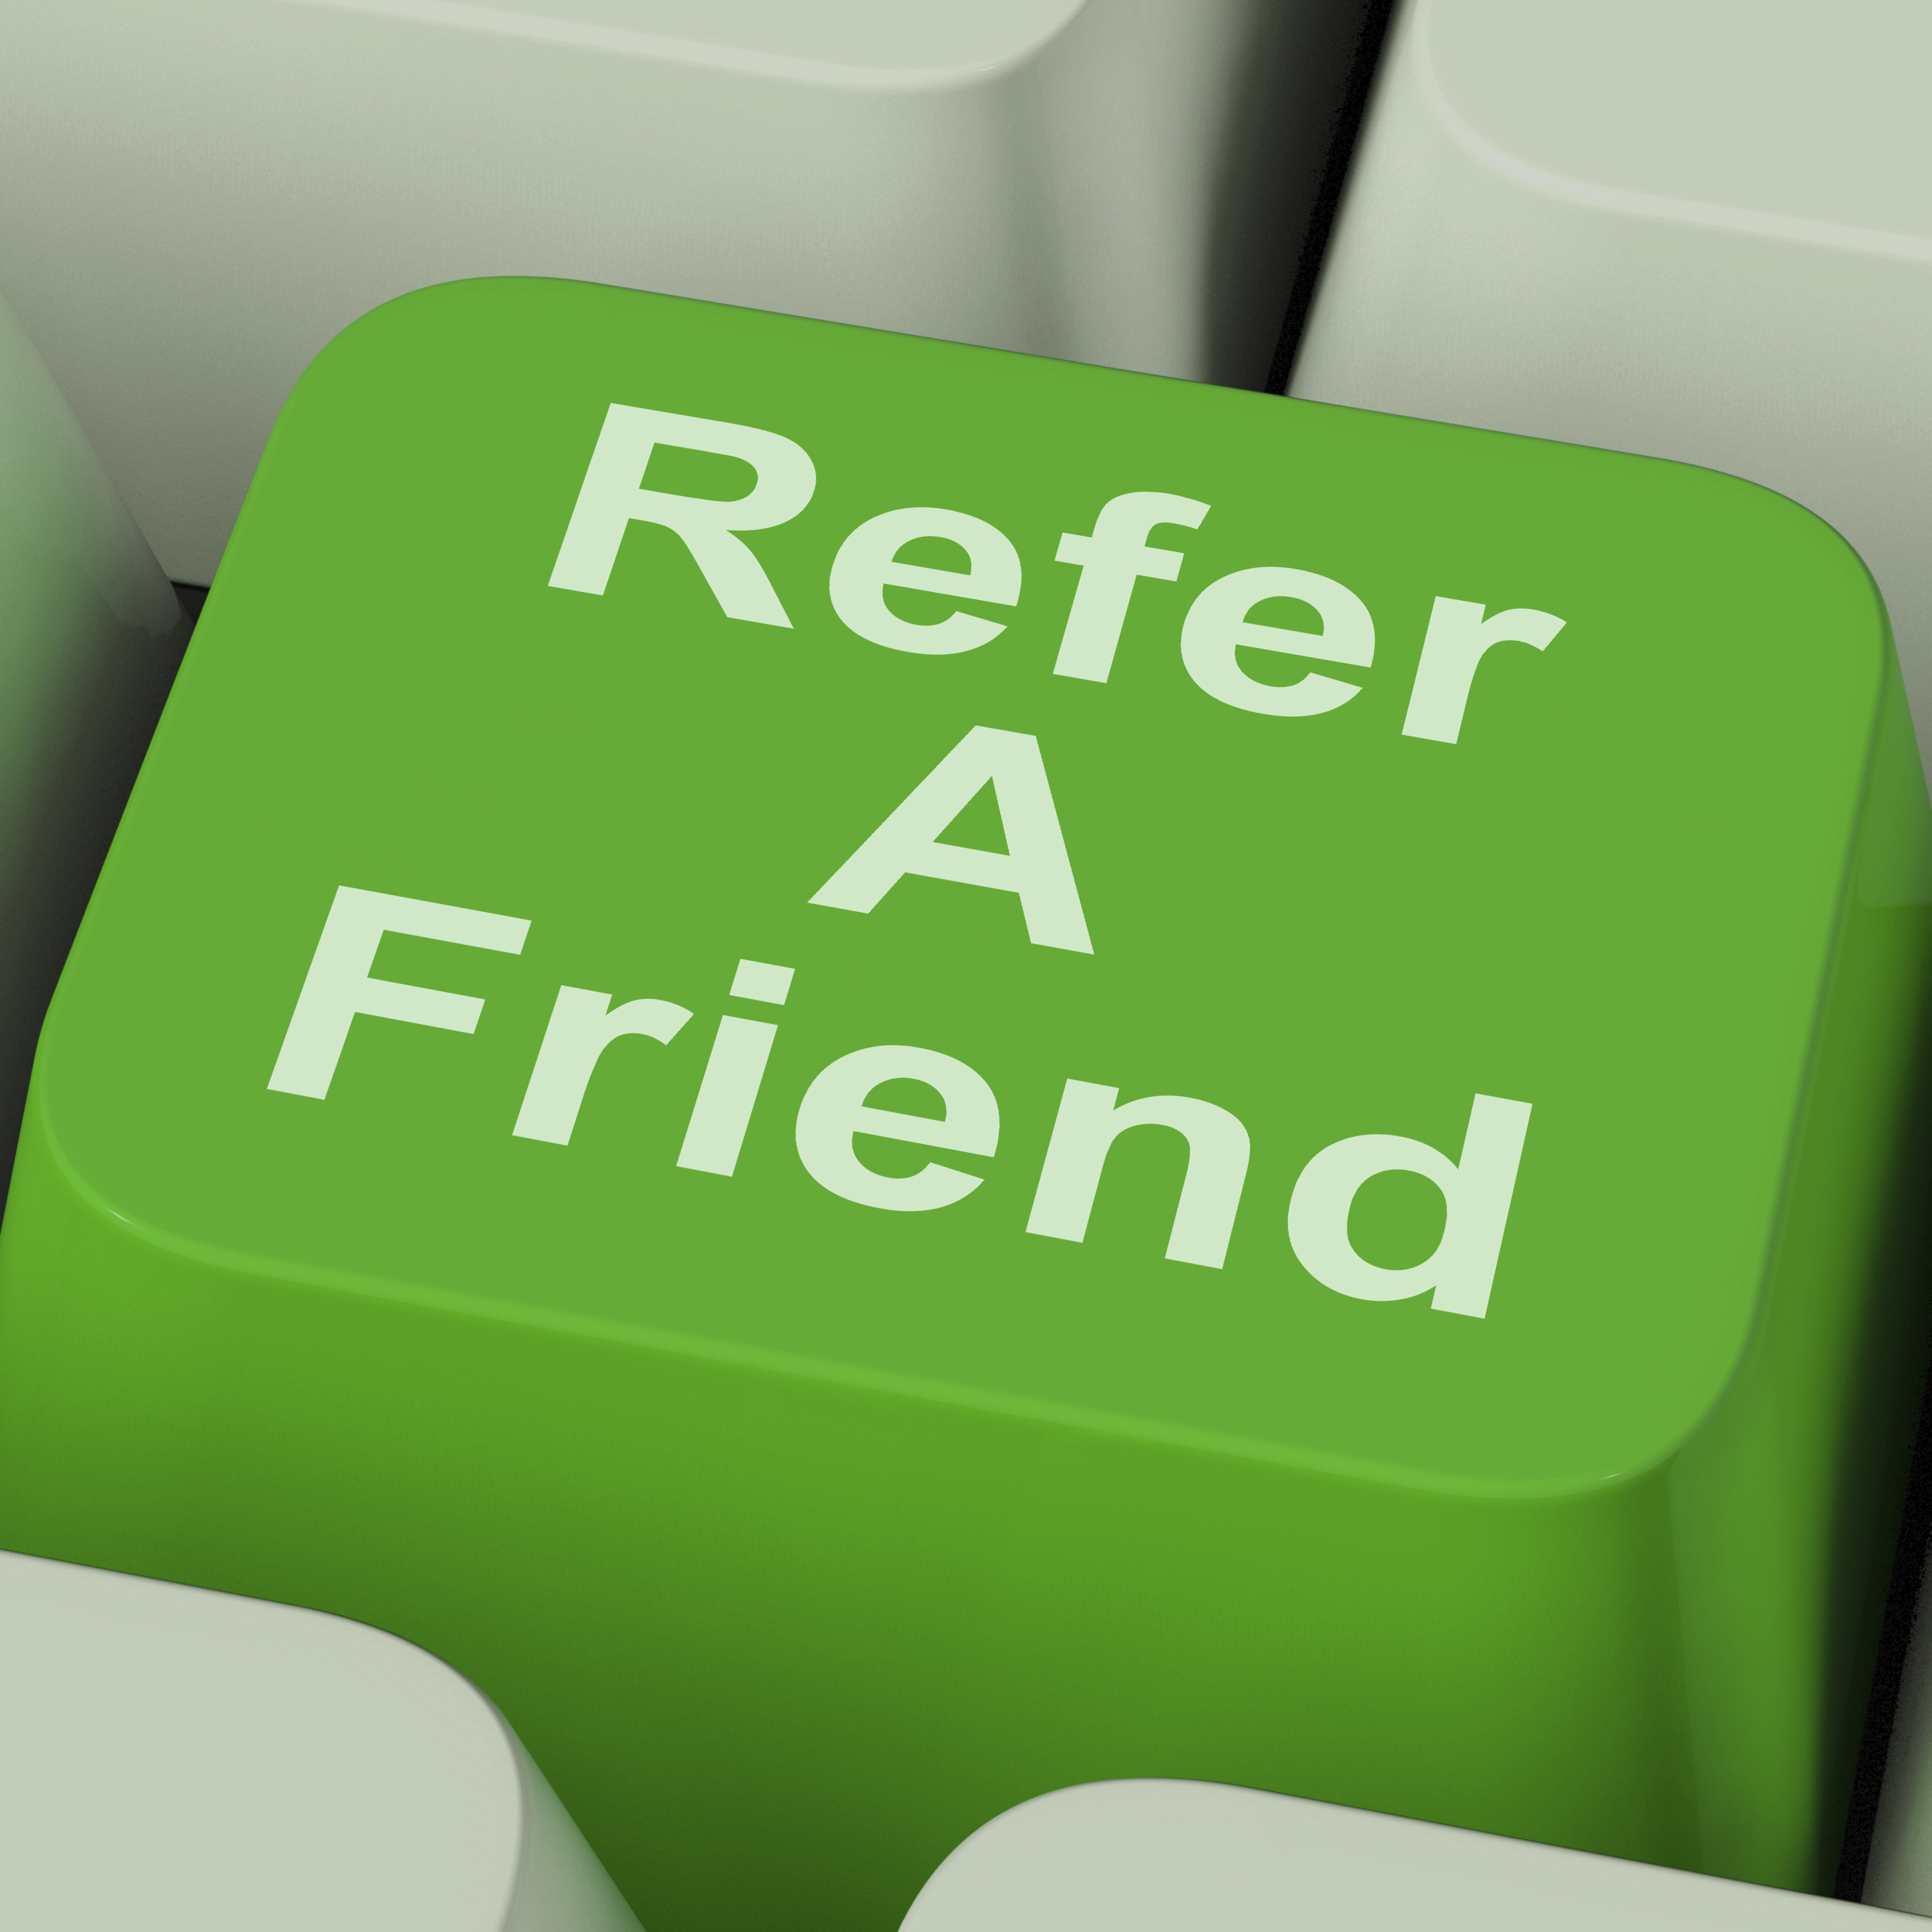 No Referrals? Time to Rethink Your Process - Here's How